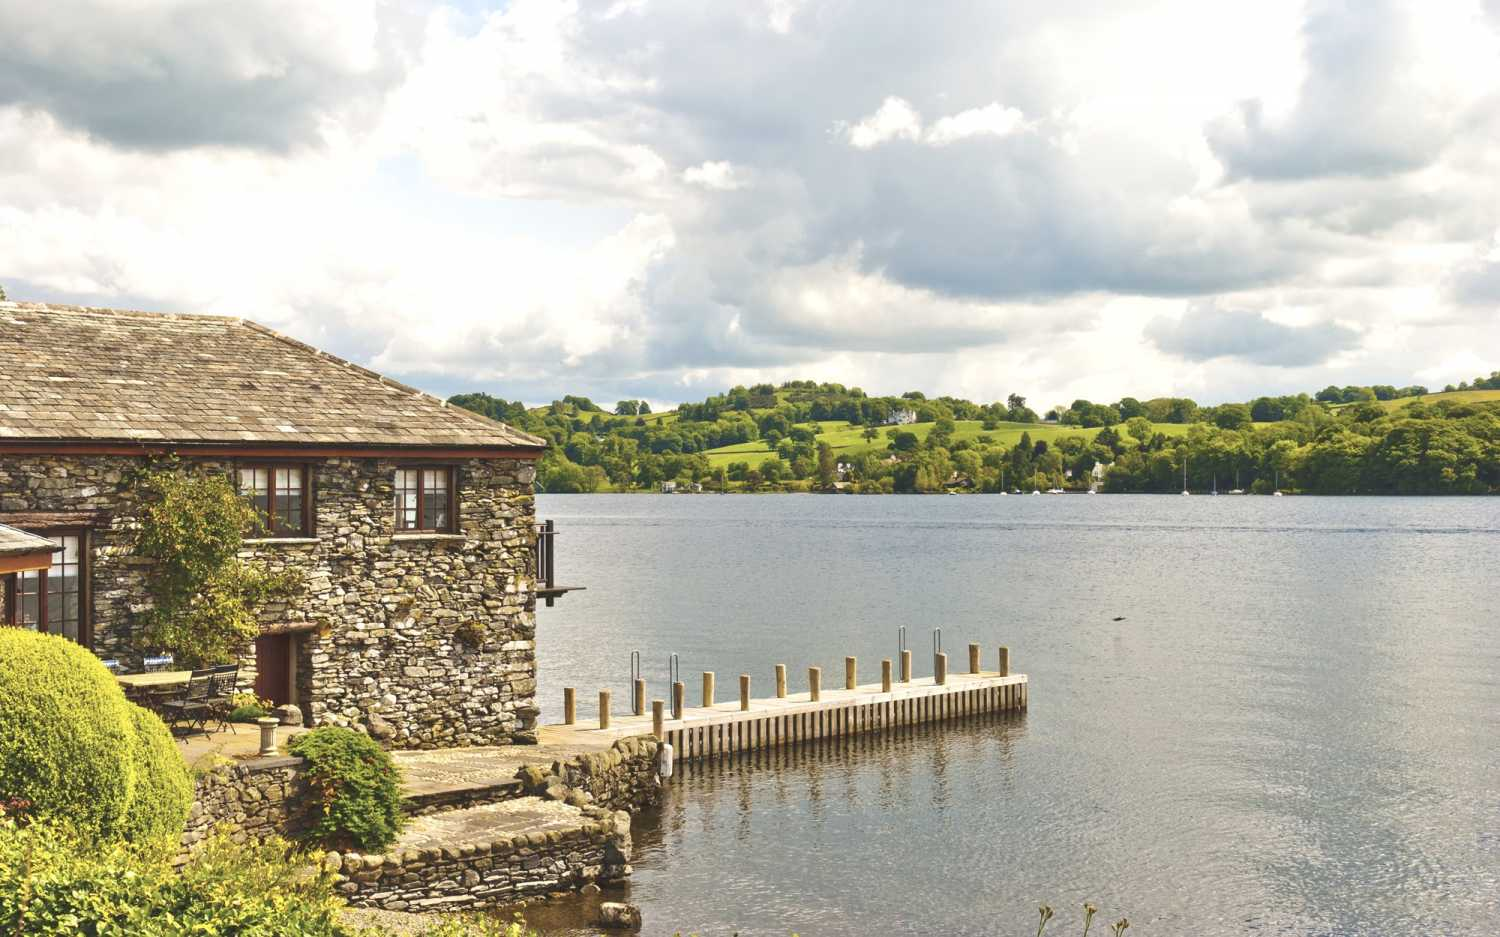 Picture of Radstock - Last Minute Cottages in Radstock